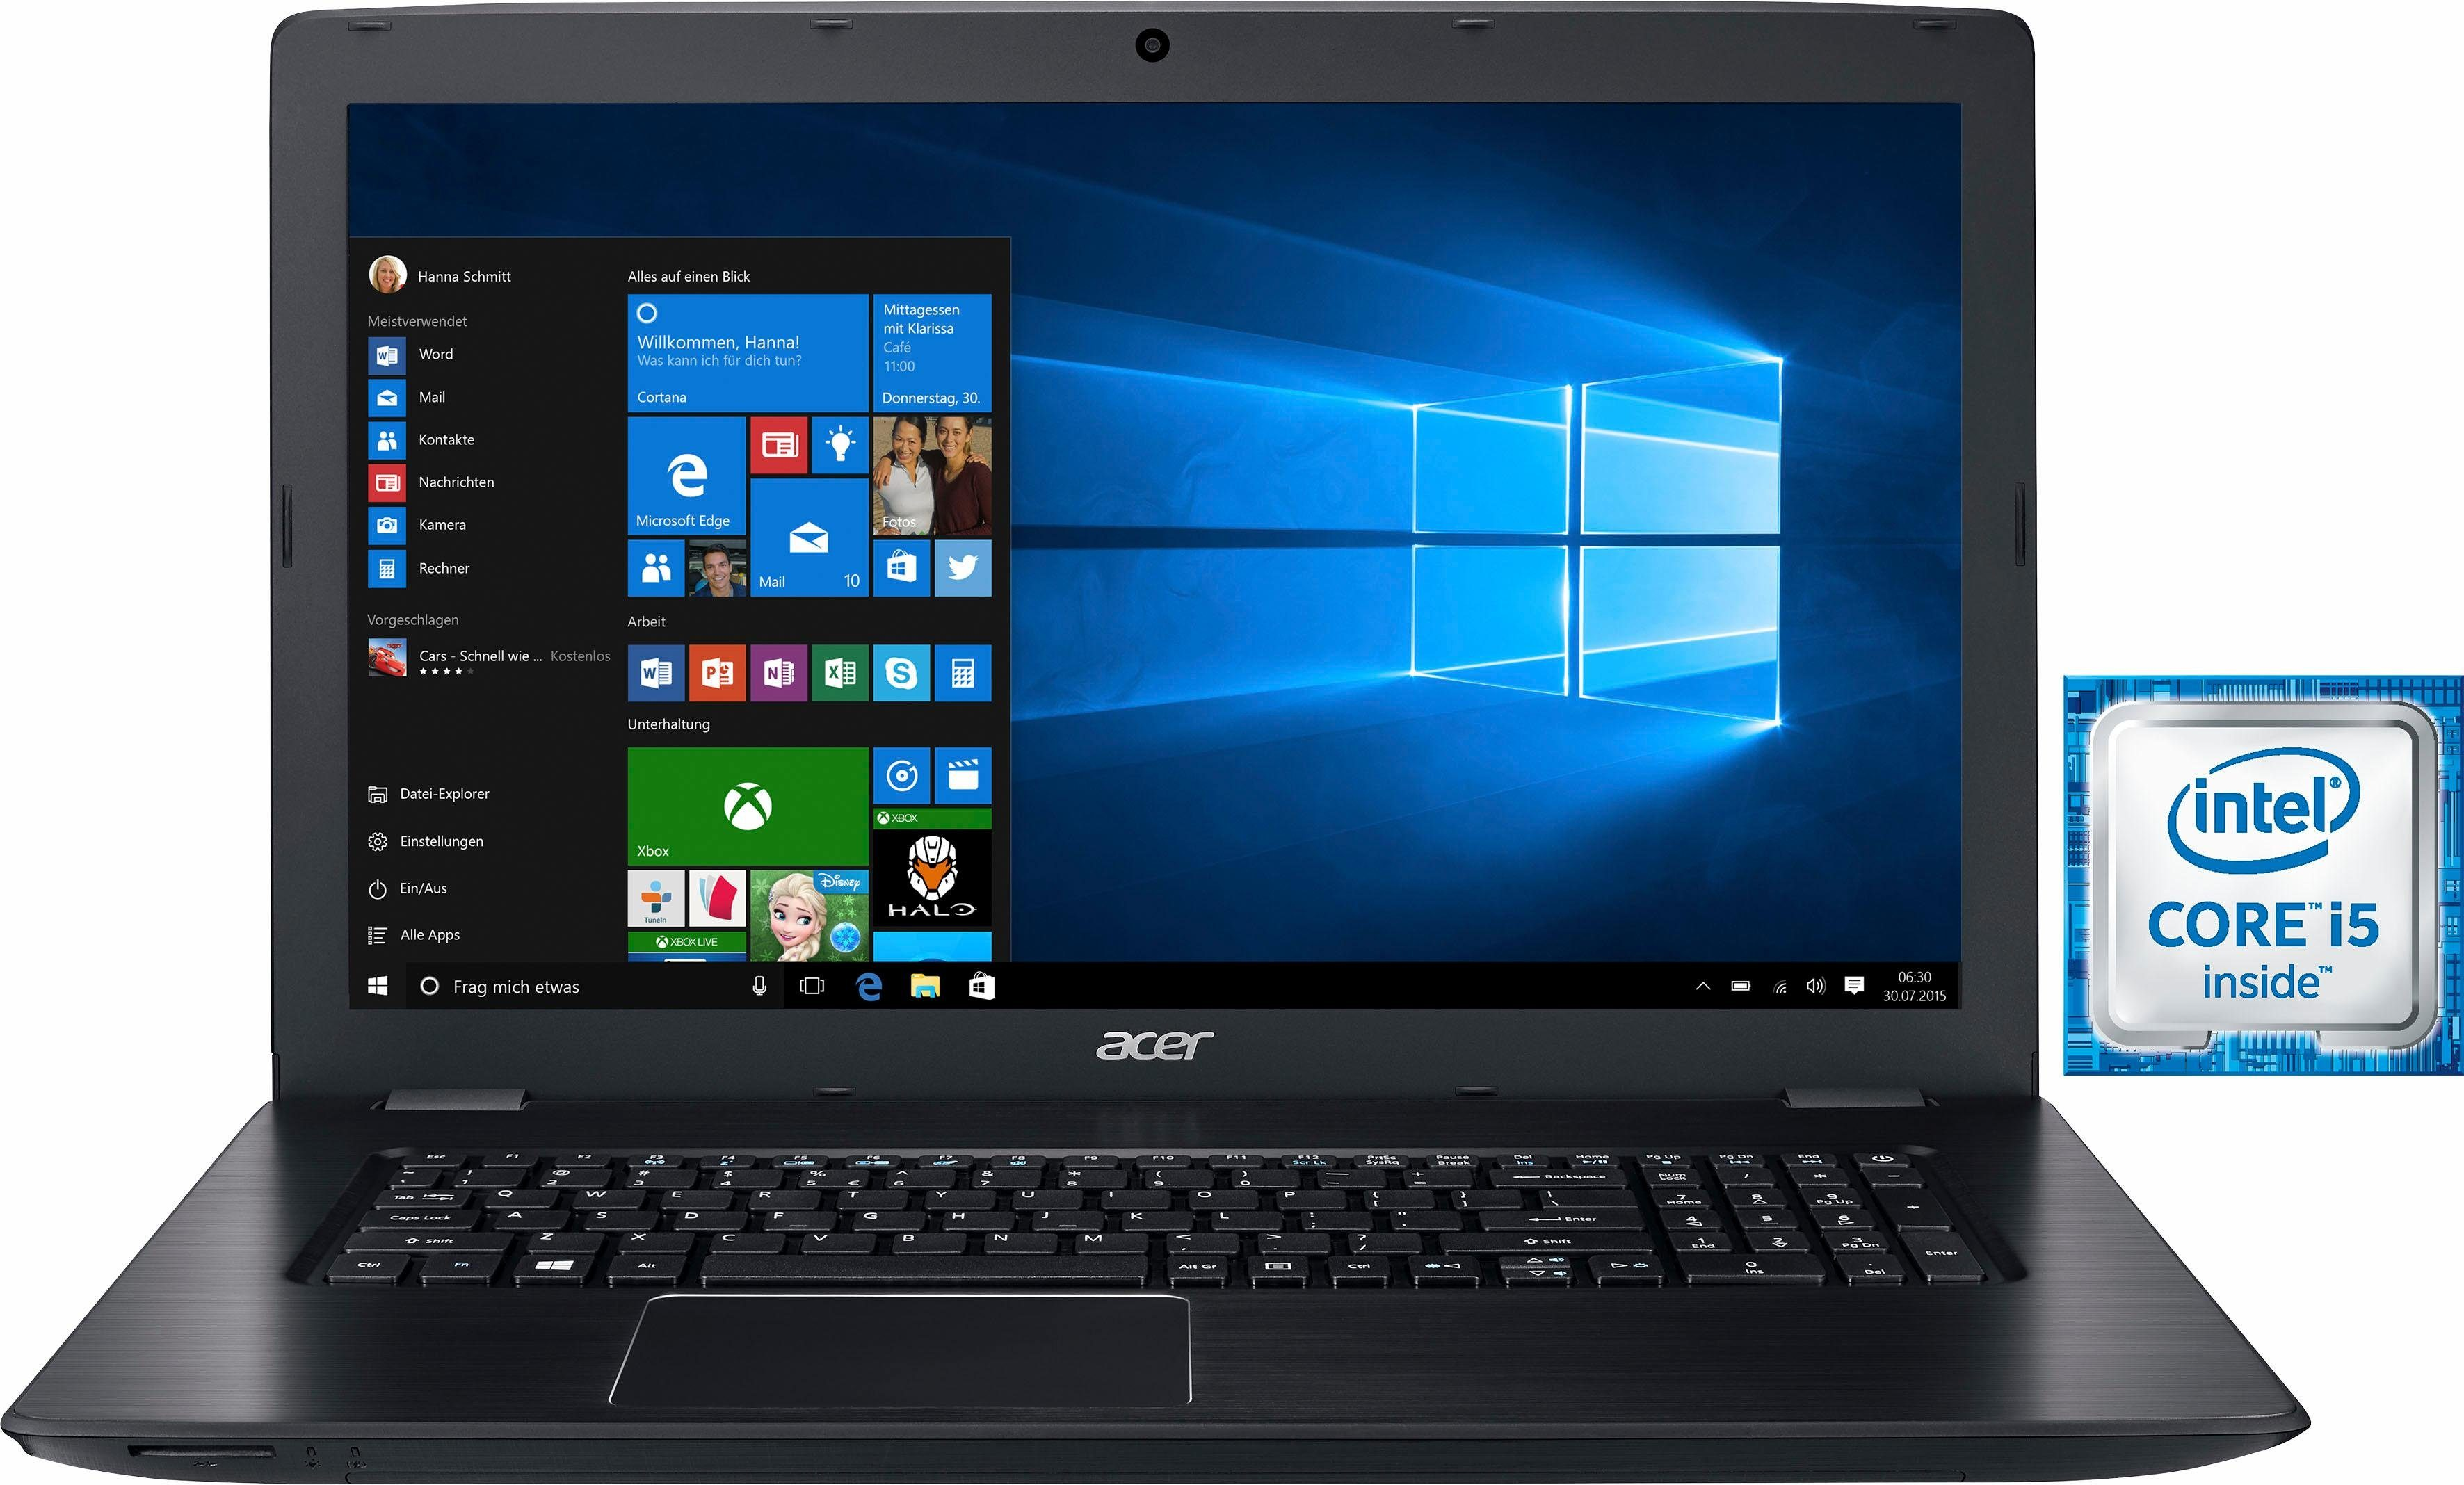 Acer E5-774G-56EP Notebook, Intel® Core™ i5, 43,9 cm (17,3 Zoll), 1128 GB Speicher, 8192 MB DDR4-RAM